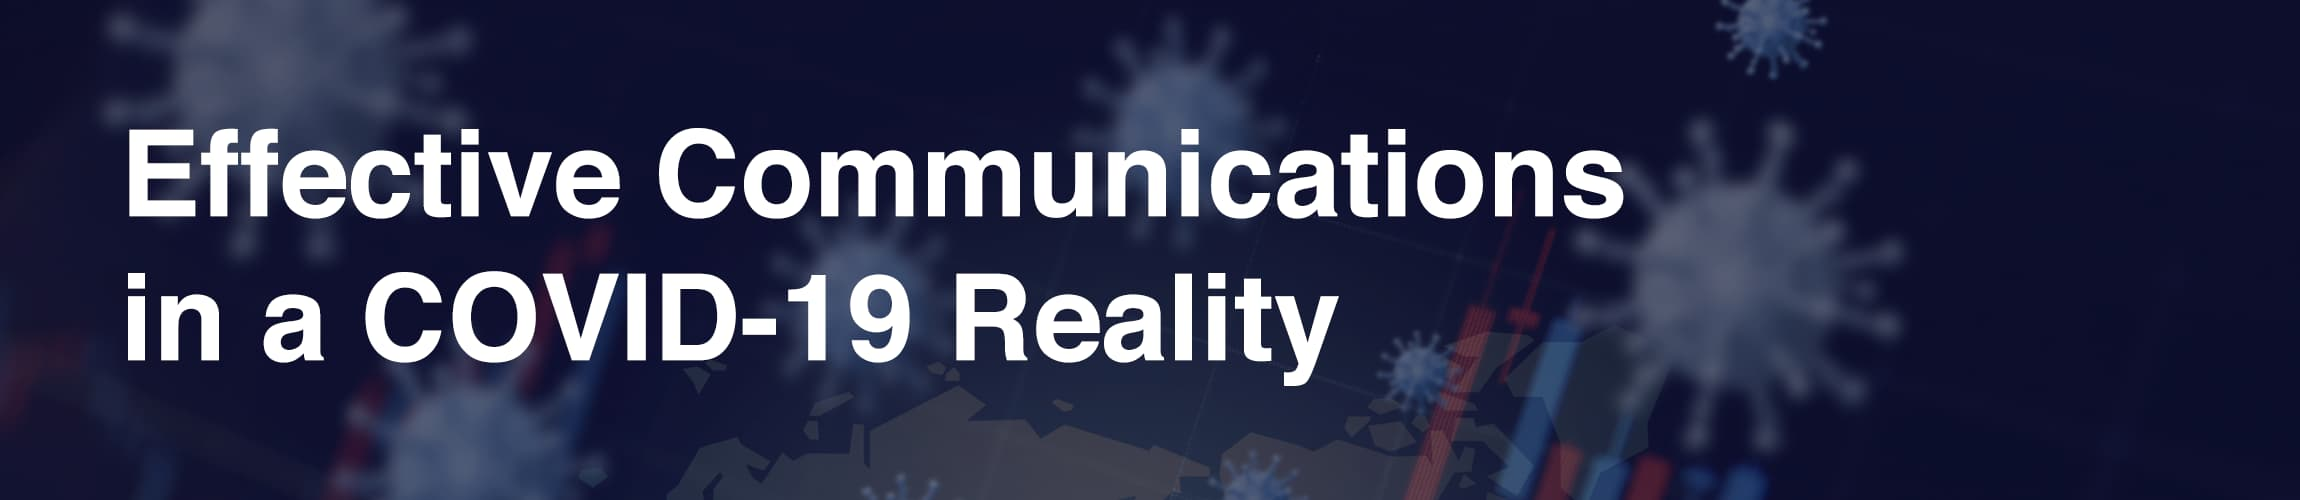 Effective Communications in a COVID-19 Reality